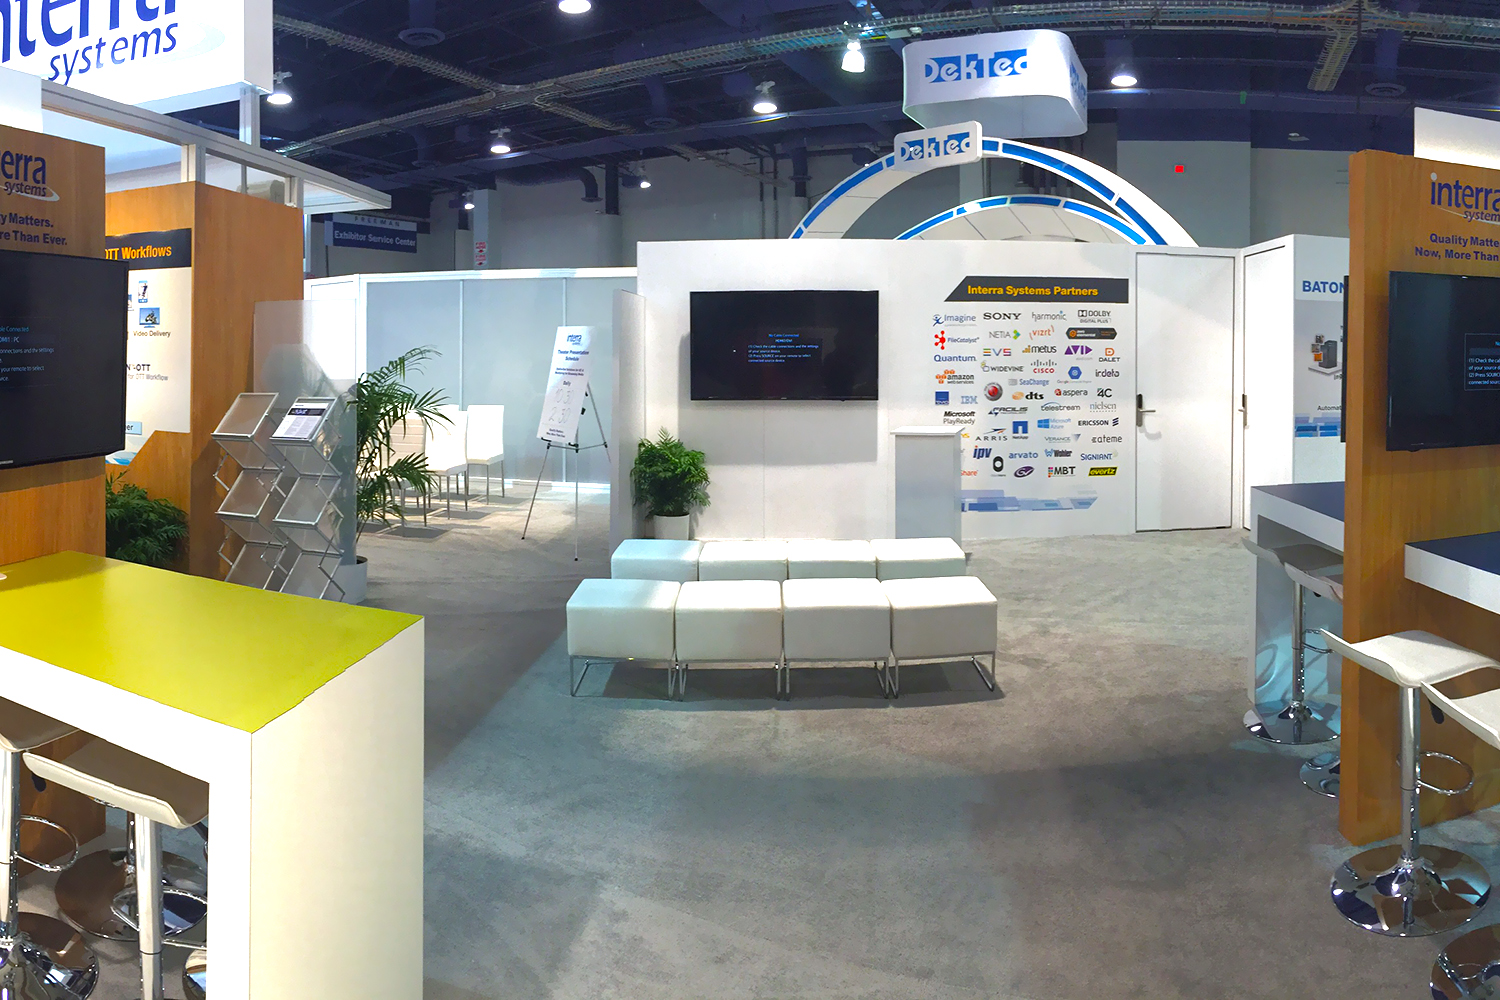 Modular Exhibition Stands Yard : Modular displays for trade shows events ✓ ships from san diego